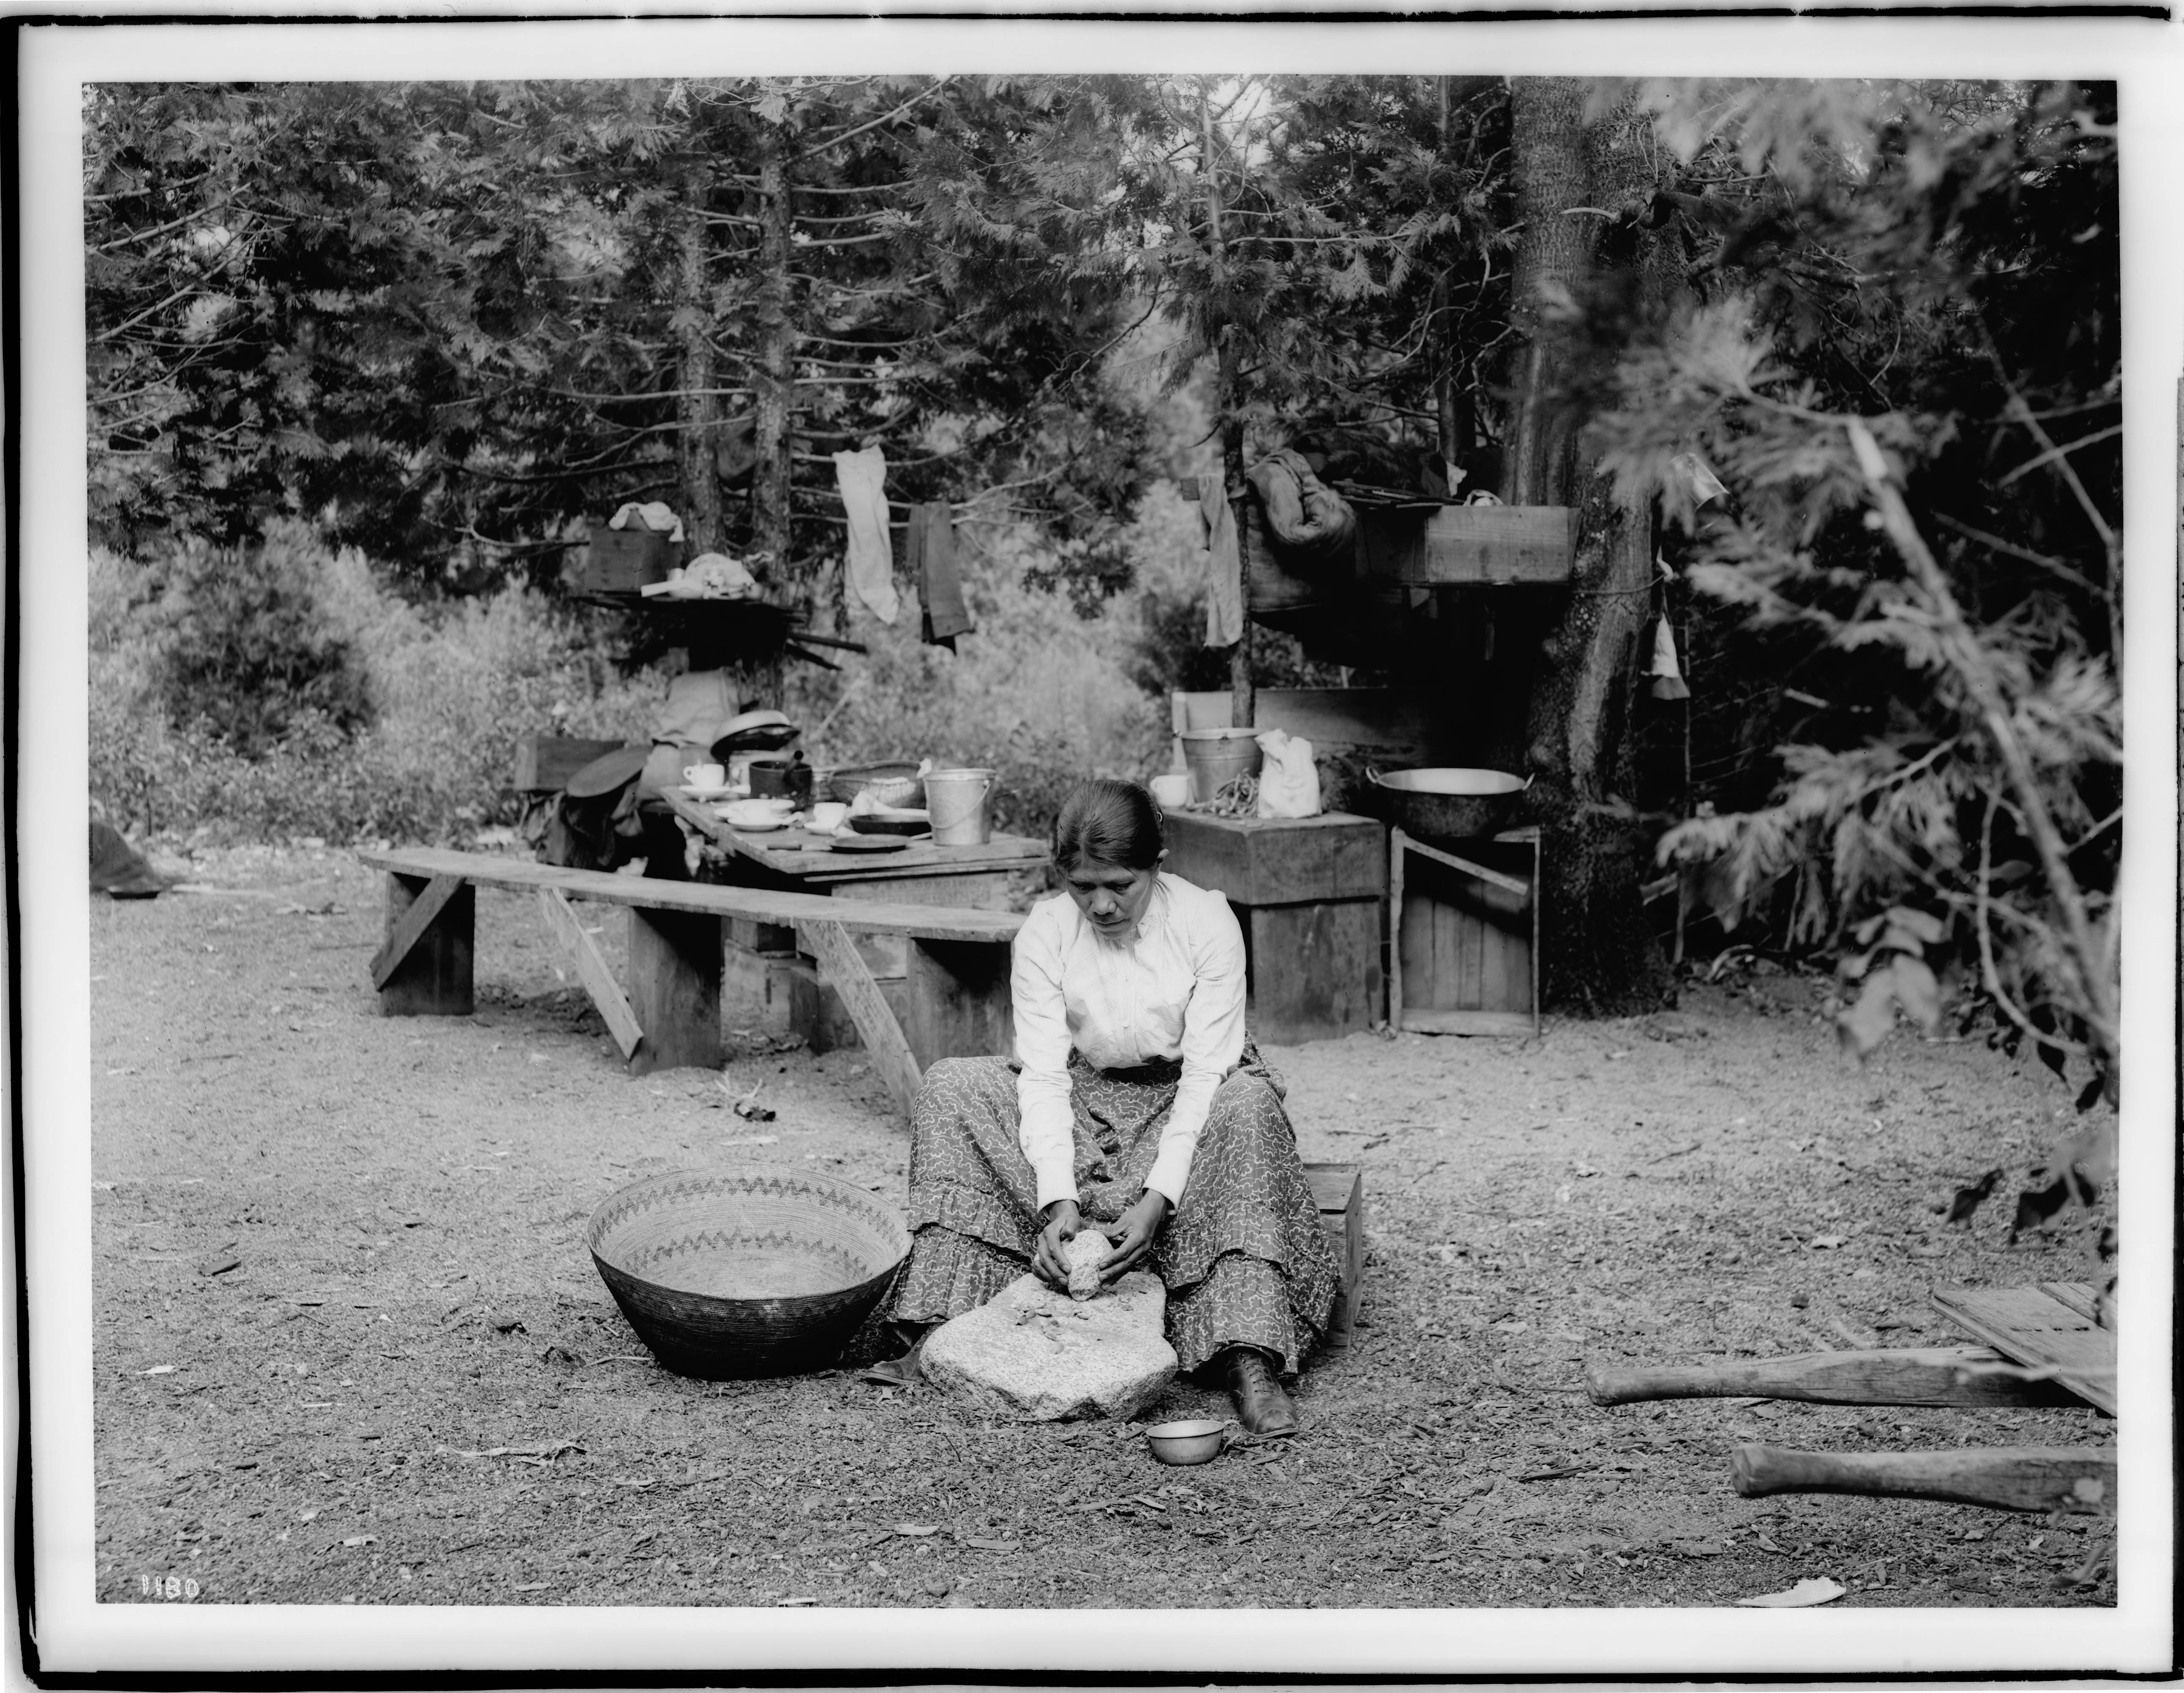 FilePaiute Indian Woman Sitting On A Small Wooden Crate